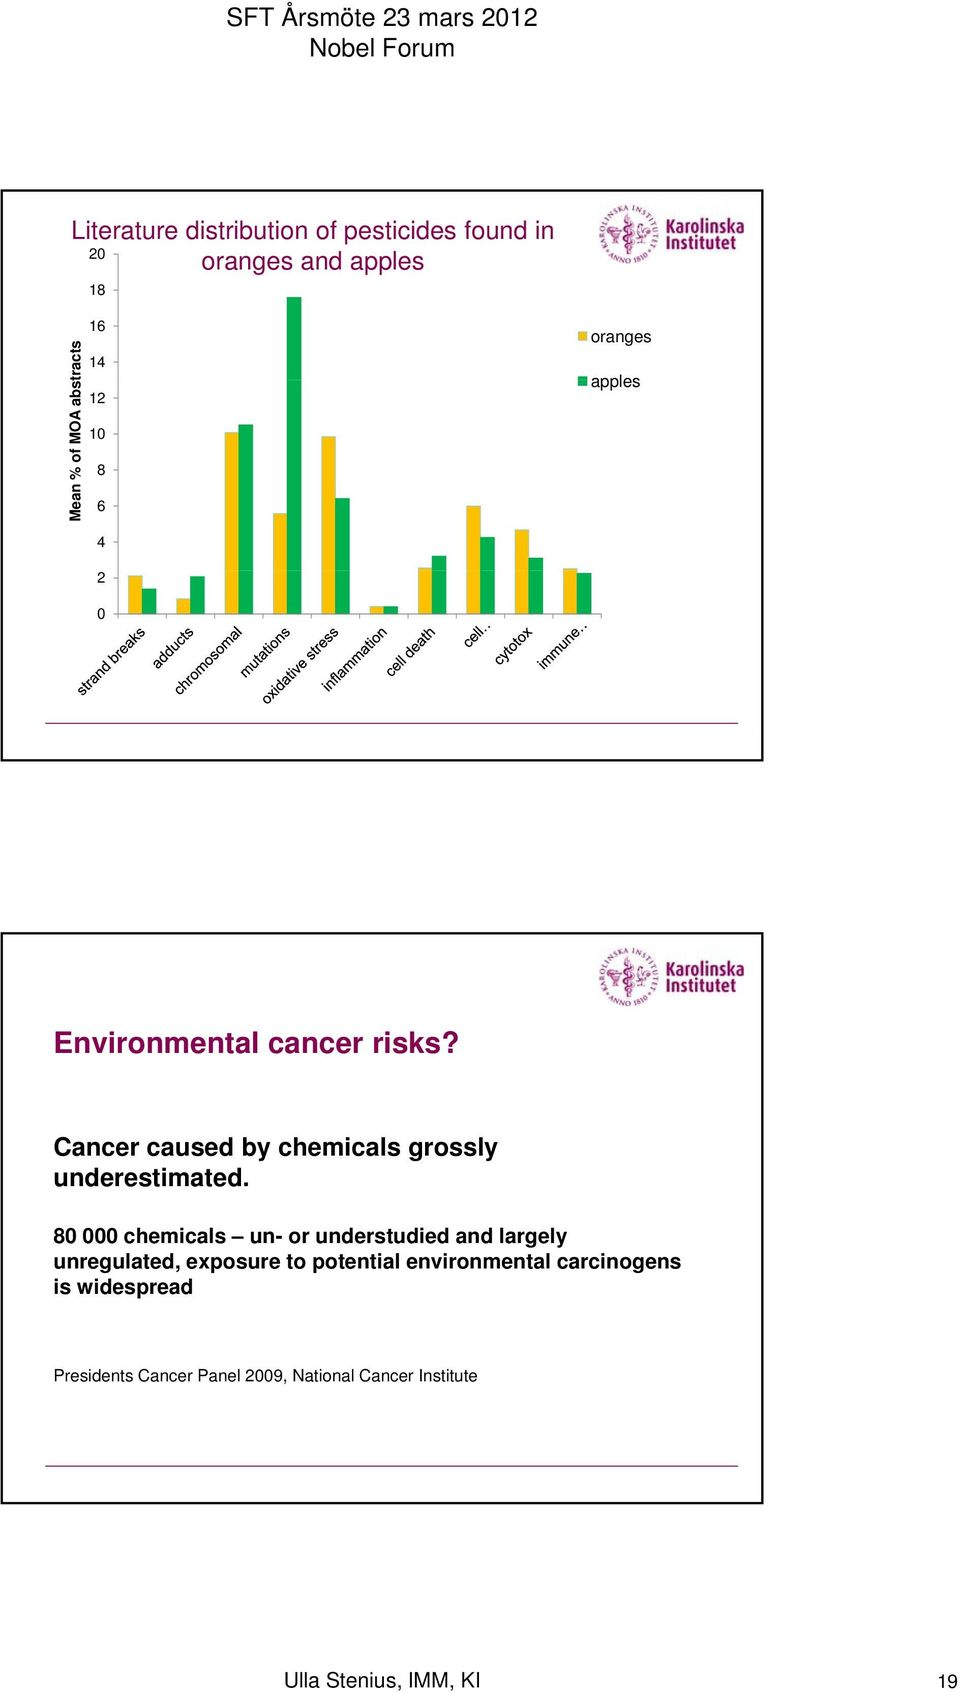 Cancer caused by chemicals grossly underestimated.